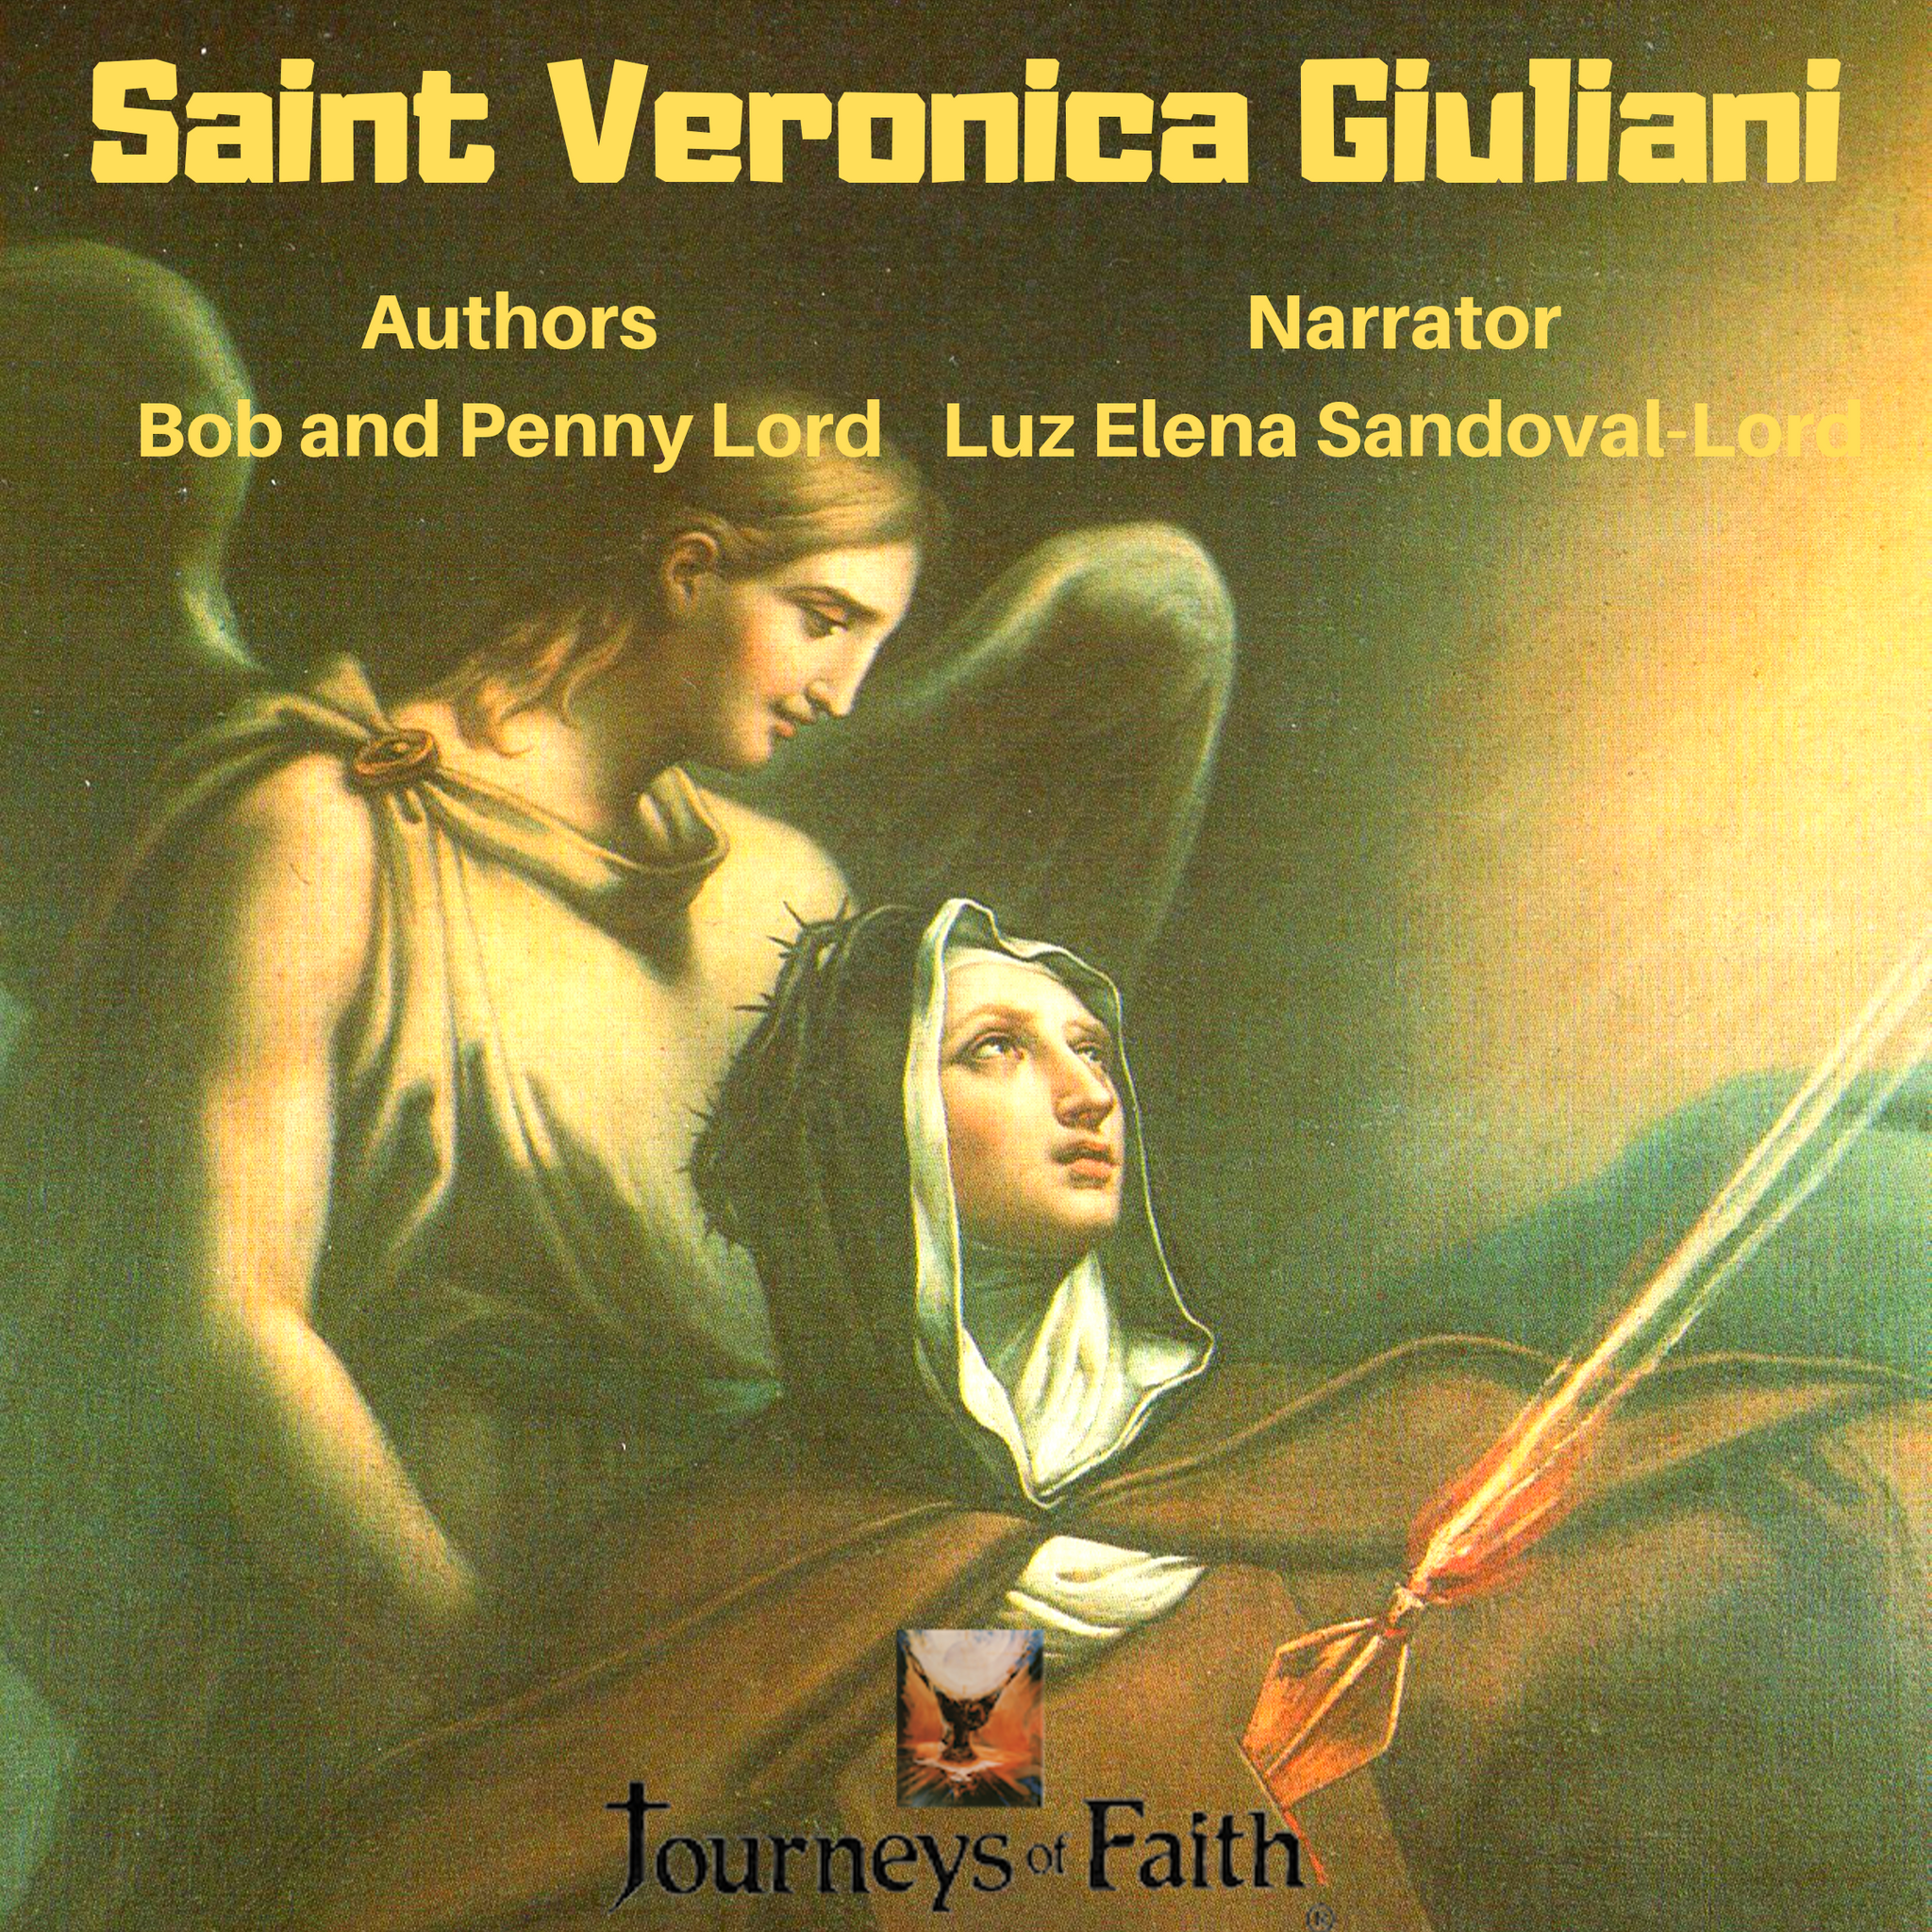 Saint Veronica Giuliani Audiobook - Bob and Penny Lord